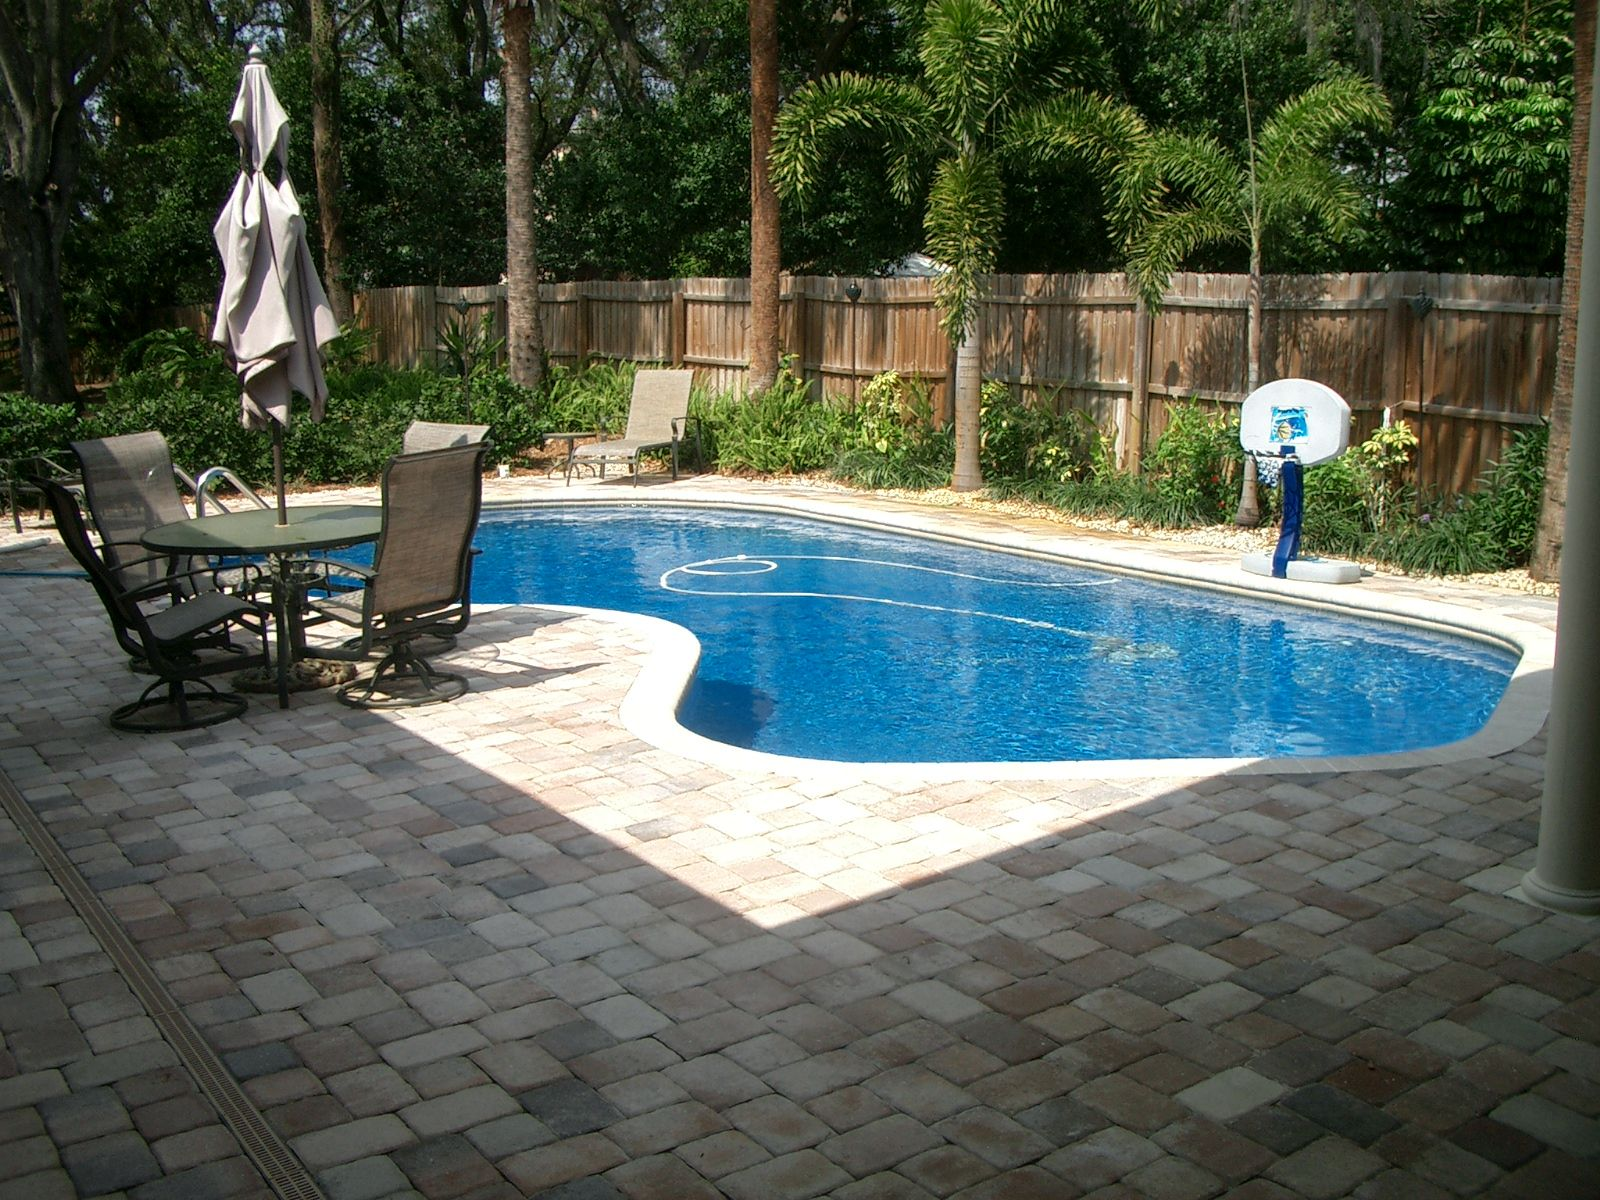 Edible landscaping for your backyard pool